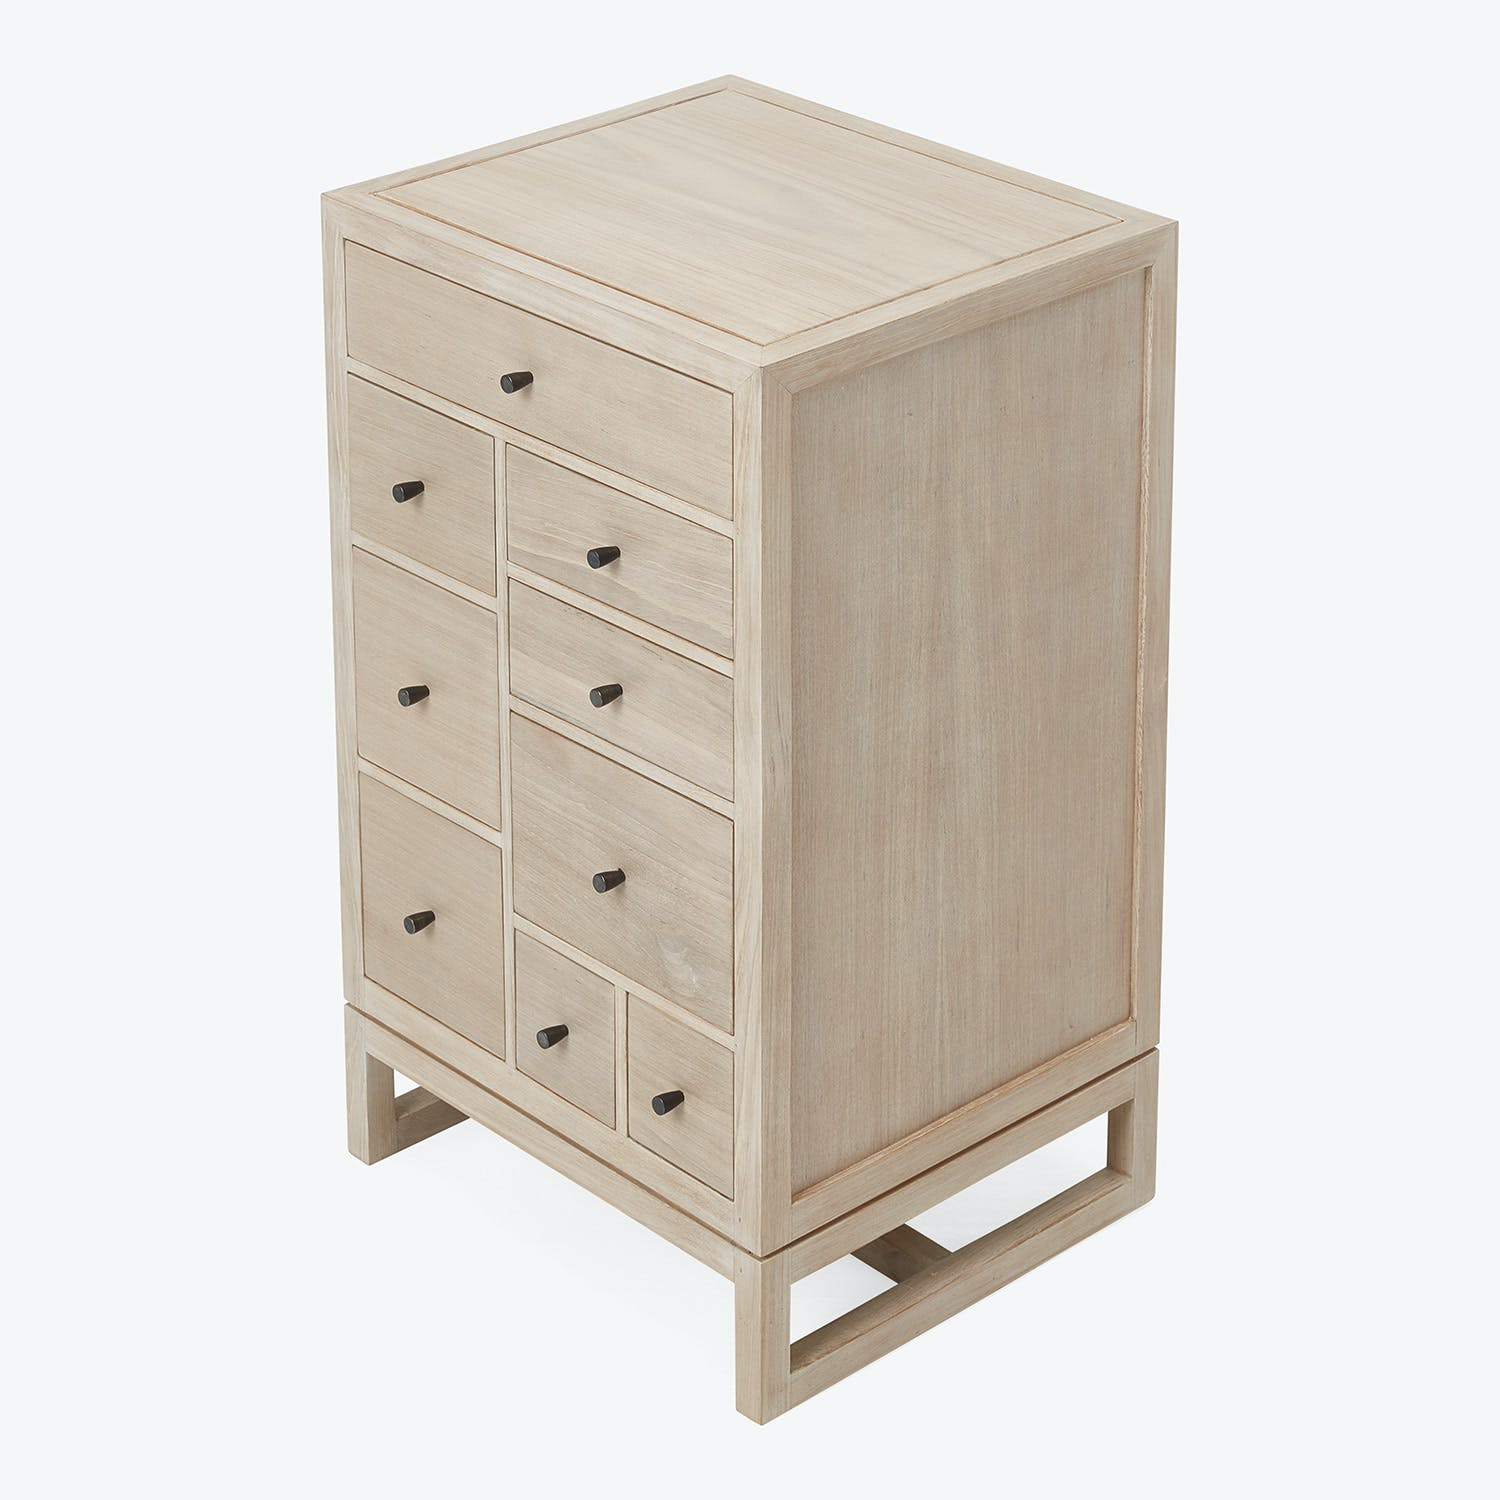 ABC Co-Create Java Teak Nightstand